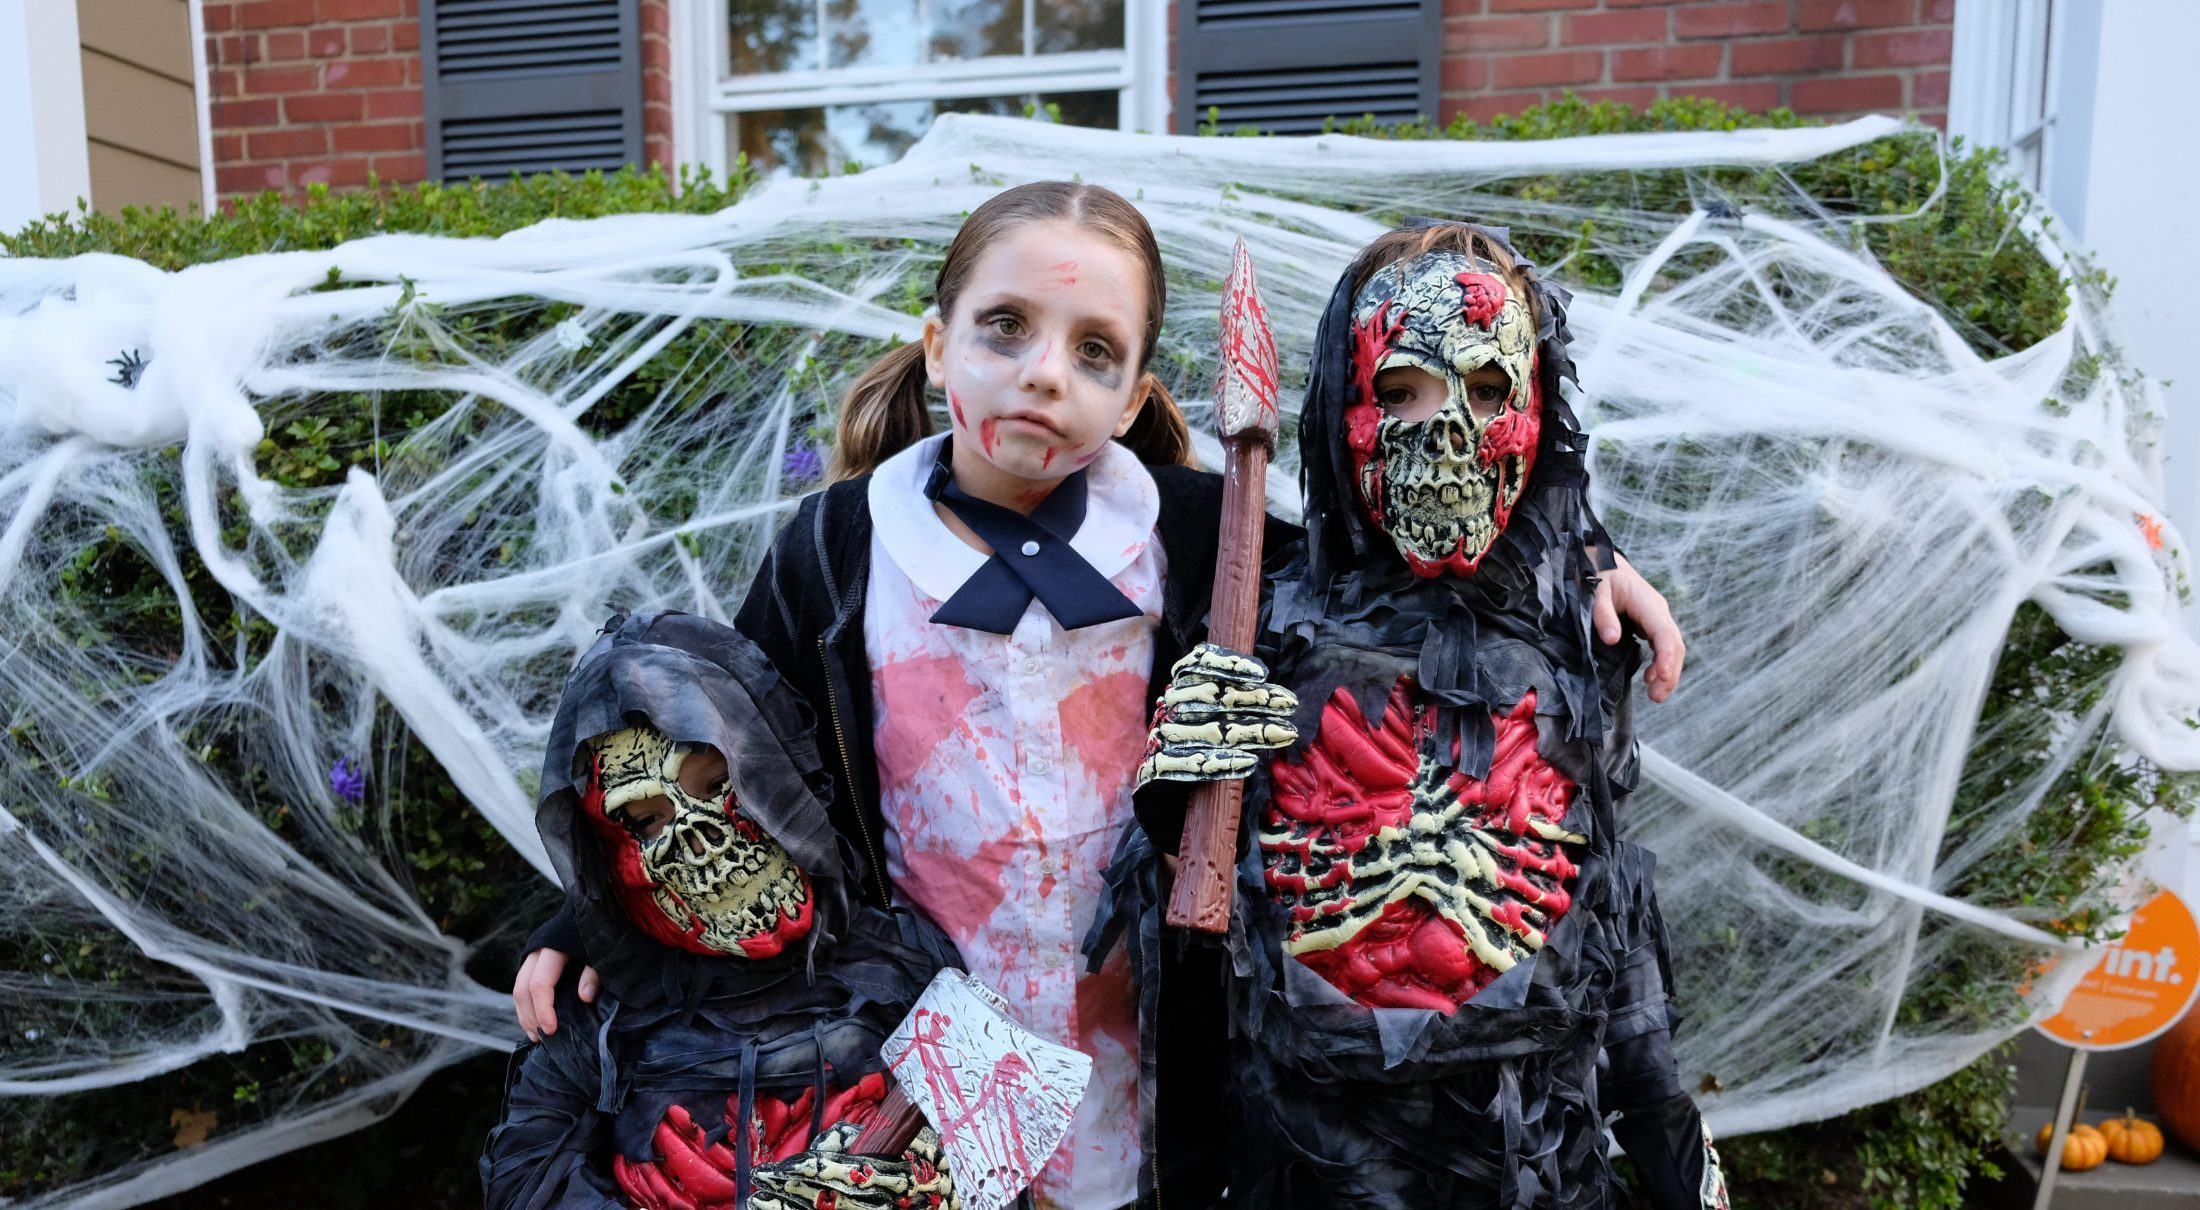 Brimley children dressed as zombies on first Halloween after death of their father